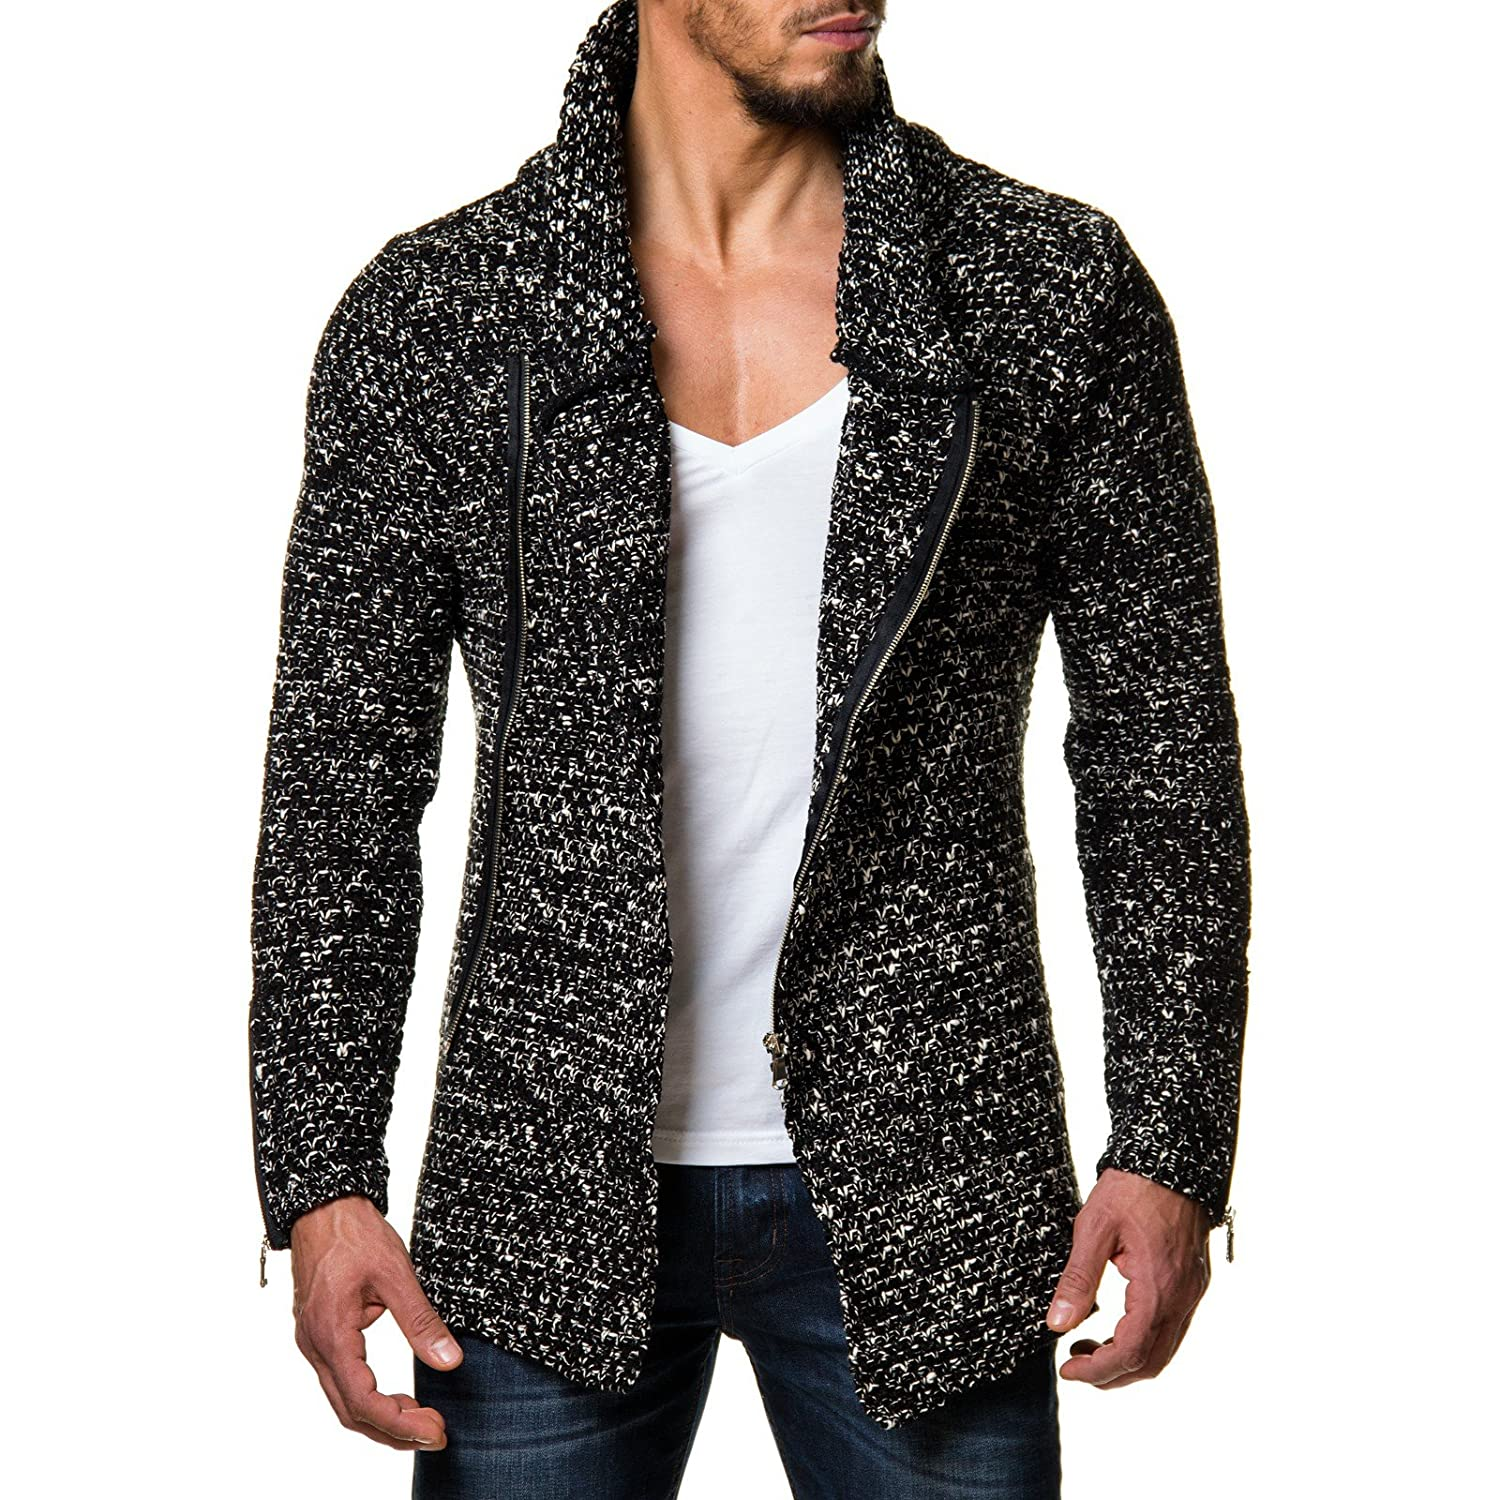 Carisma Men's Knitted Jacket Mottled Chunky Knit Cardigan with Shawl Collar Black White 7337